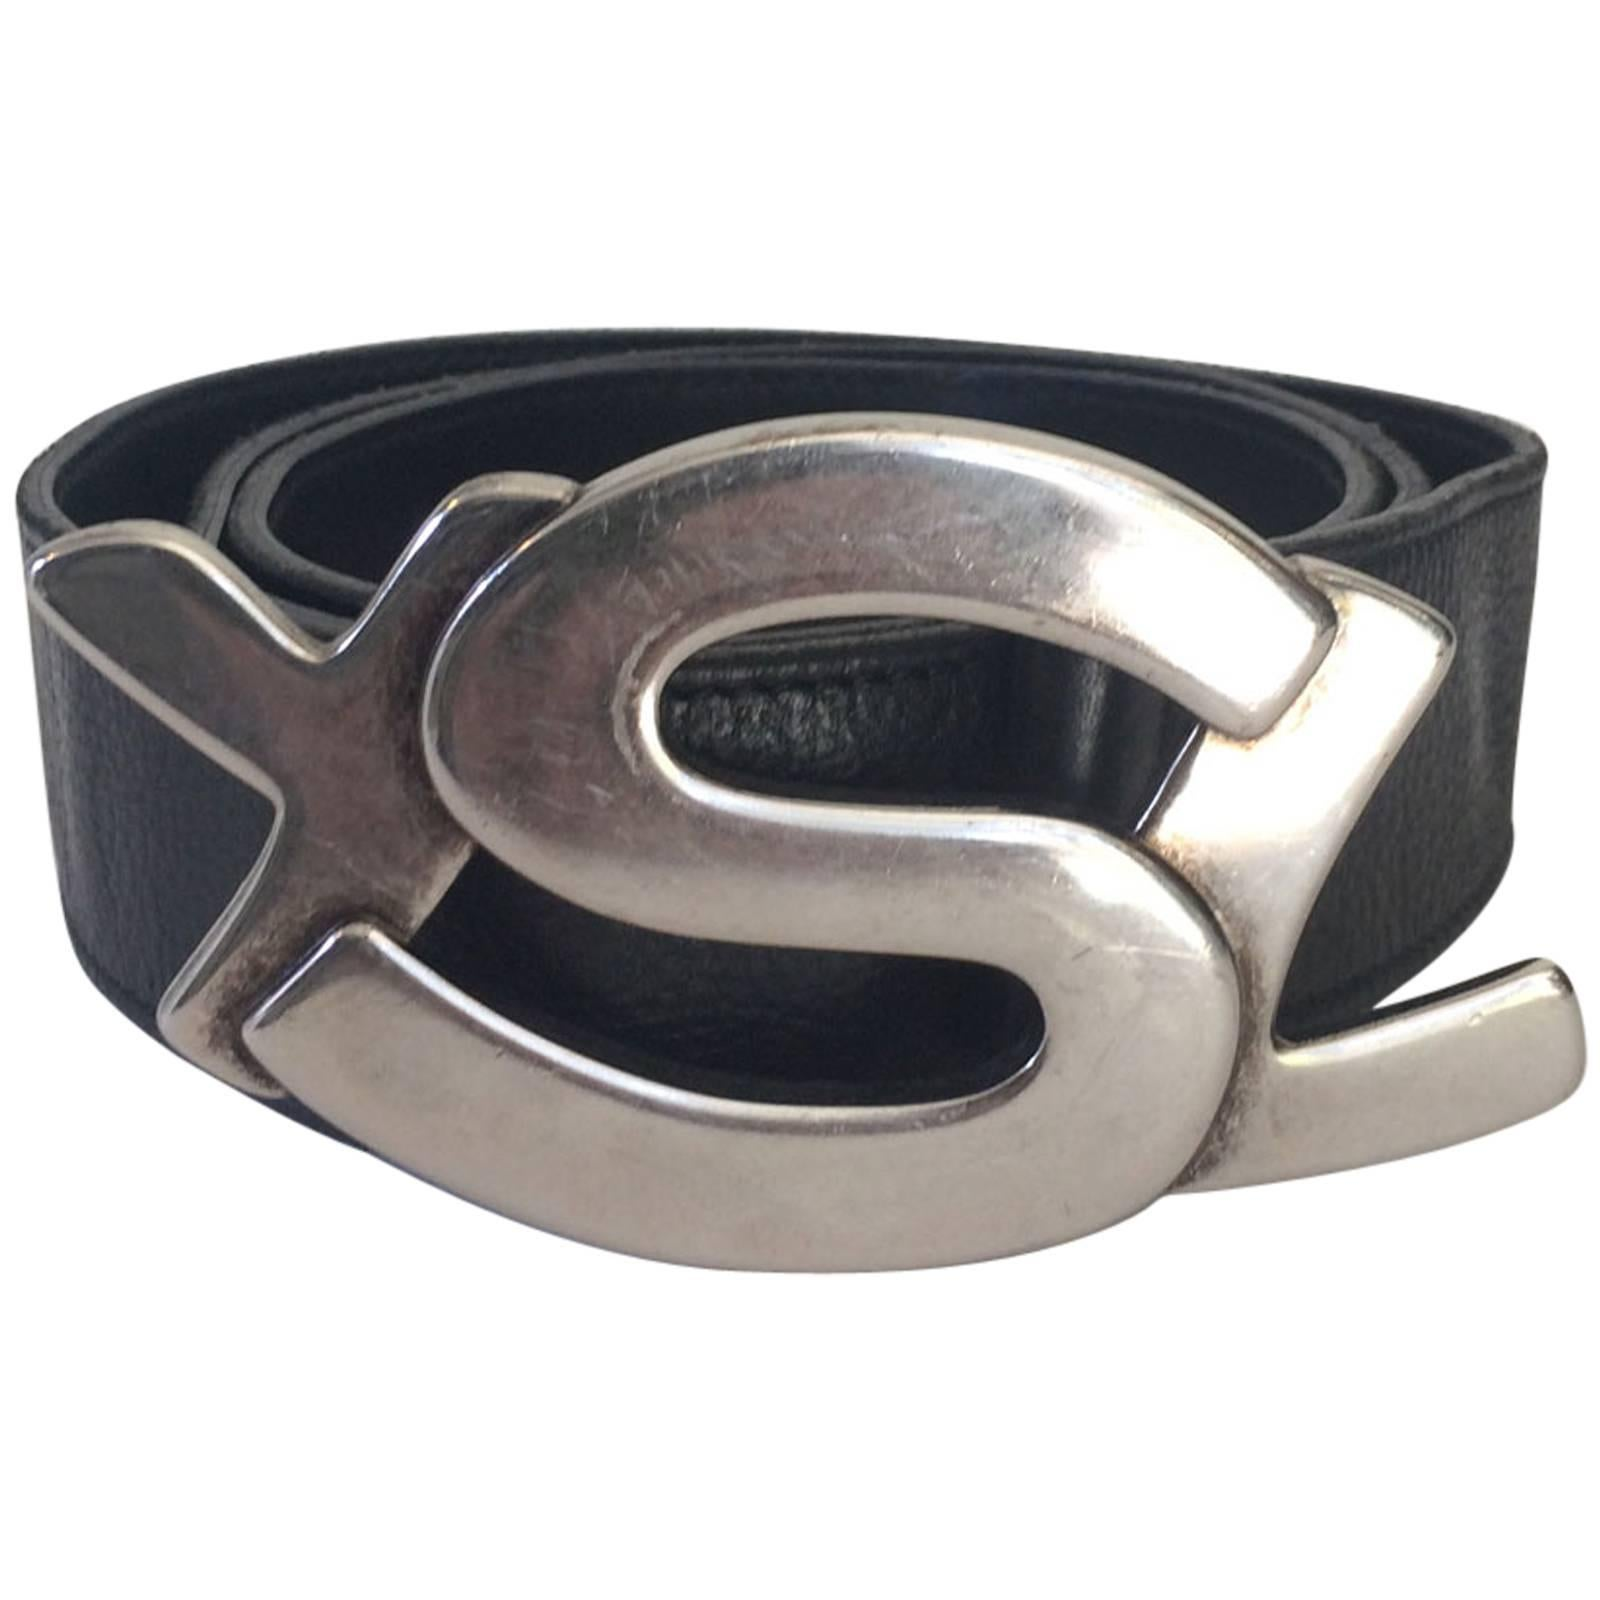 8d9040f96a2d Yves Saint Laurent Silver YSL Logo Belt and Buckle at 1stdibs